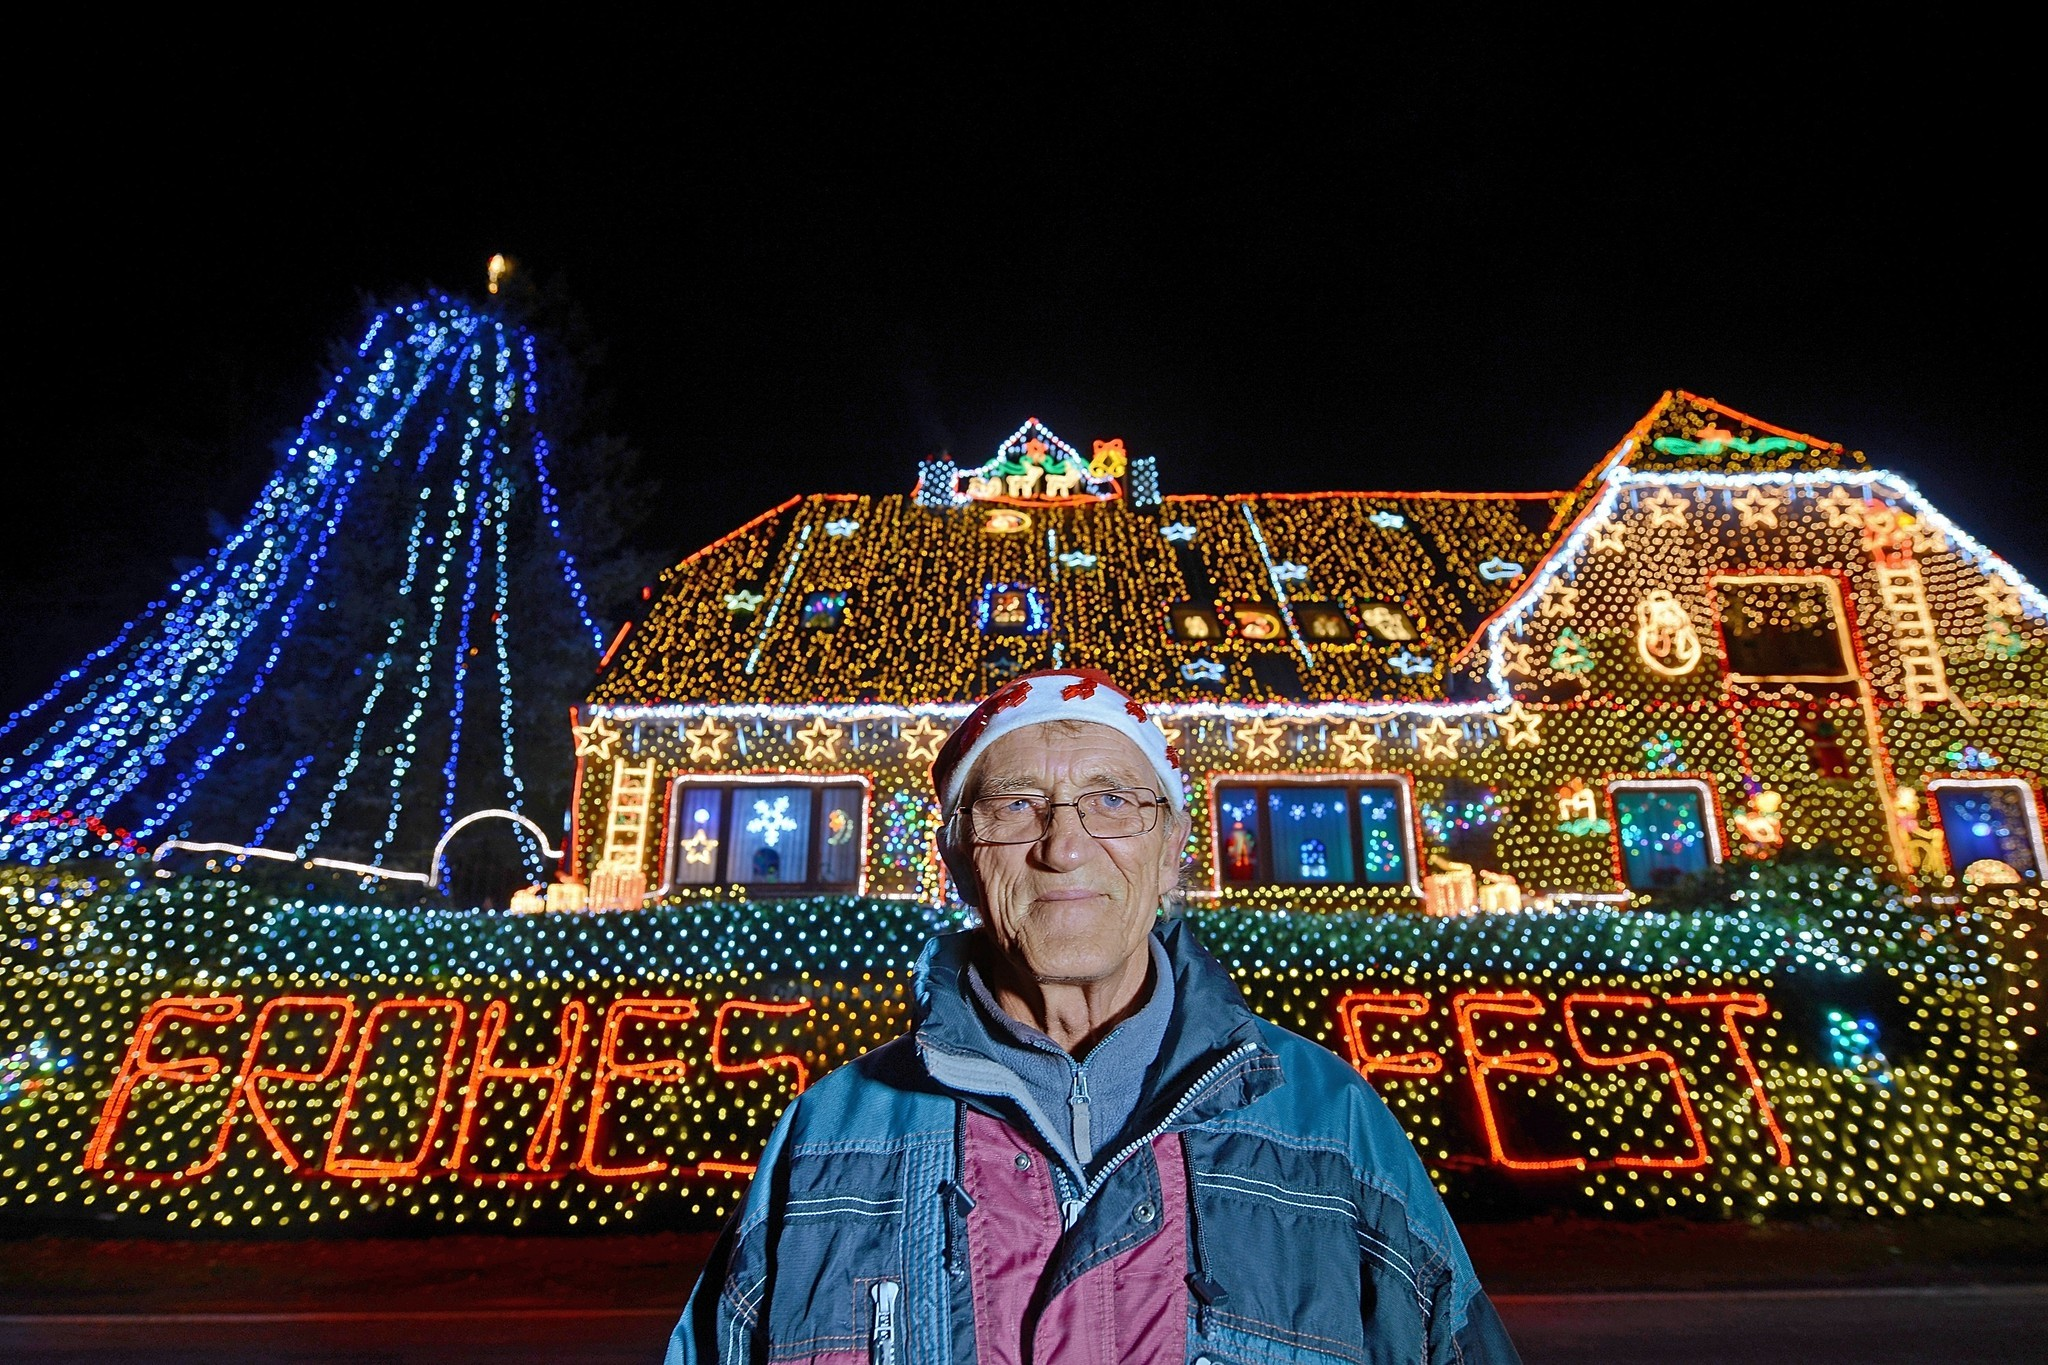 Pictures: Holiday lights from around the globe - House Decorated With 420,000 Christmas Lights